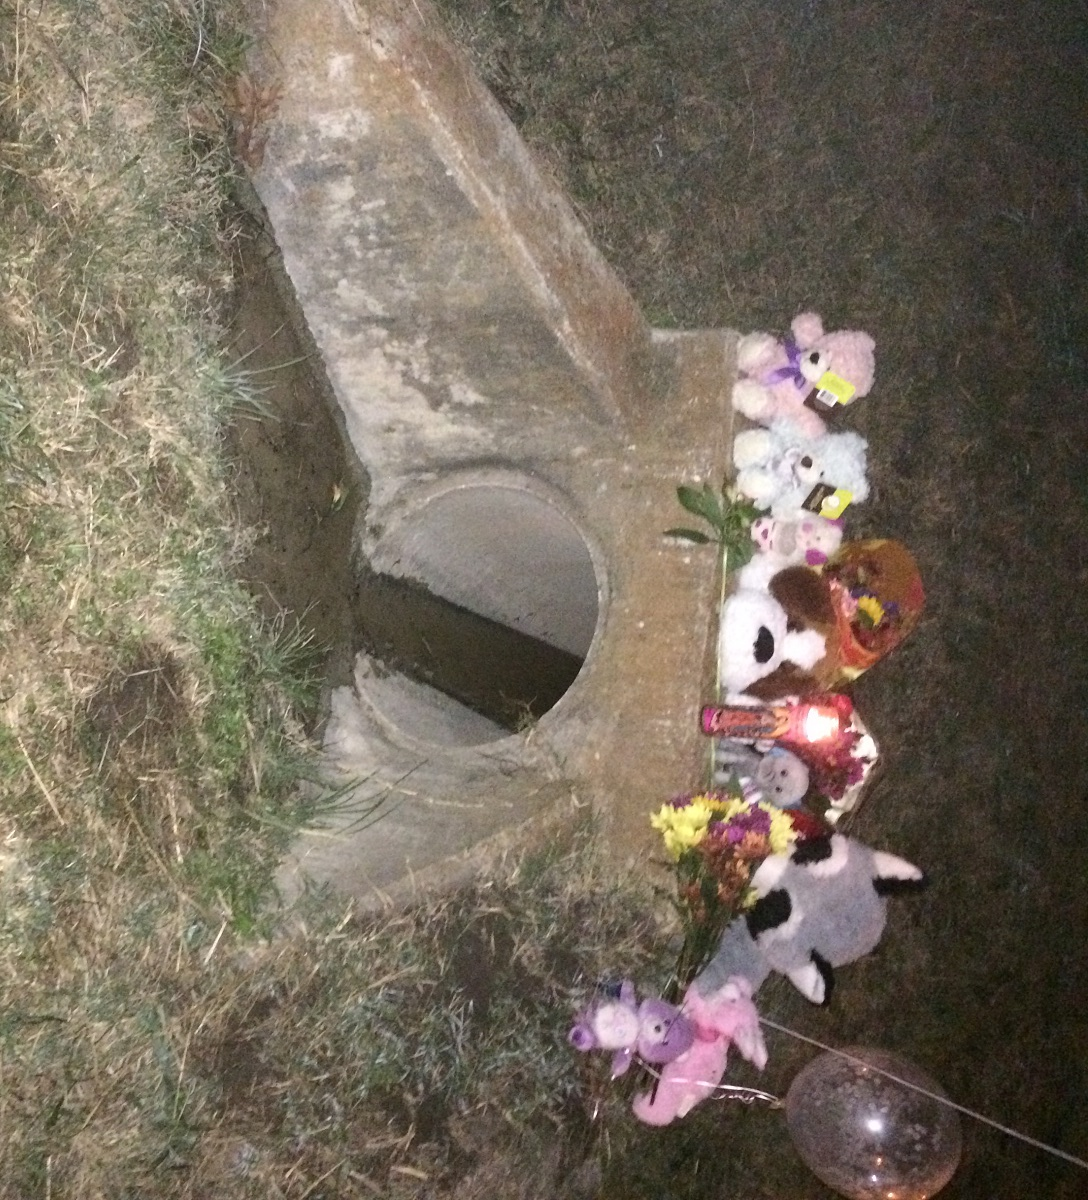 People have placed flowers at the Richardson, TX, culvert, where the body of a toddler that appears to be of Sherin Mathews was found on Sunday.